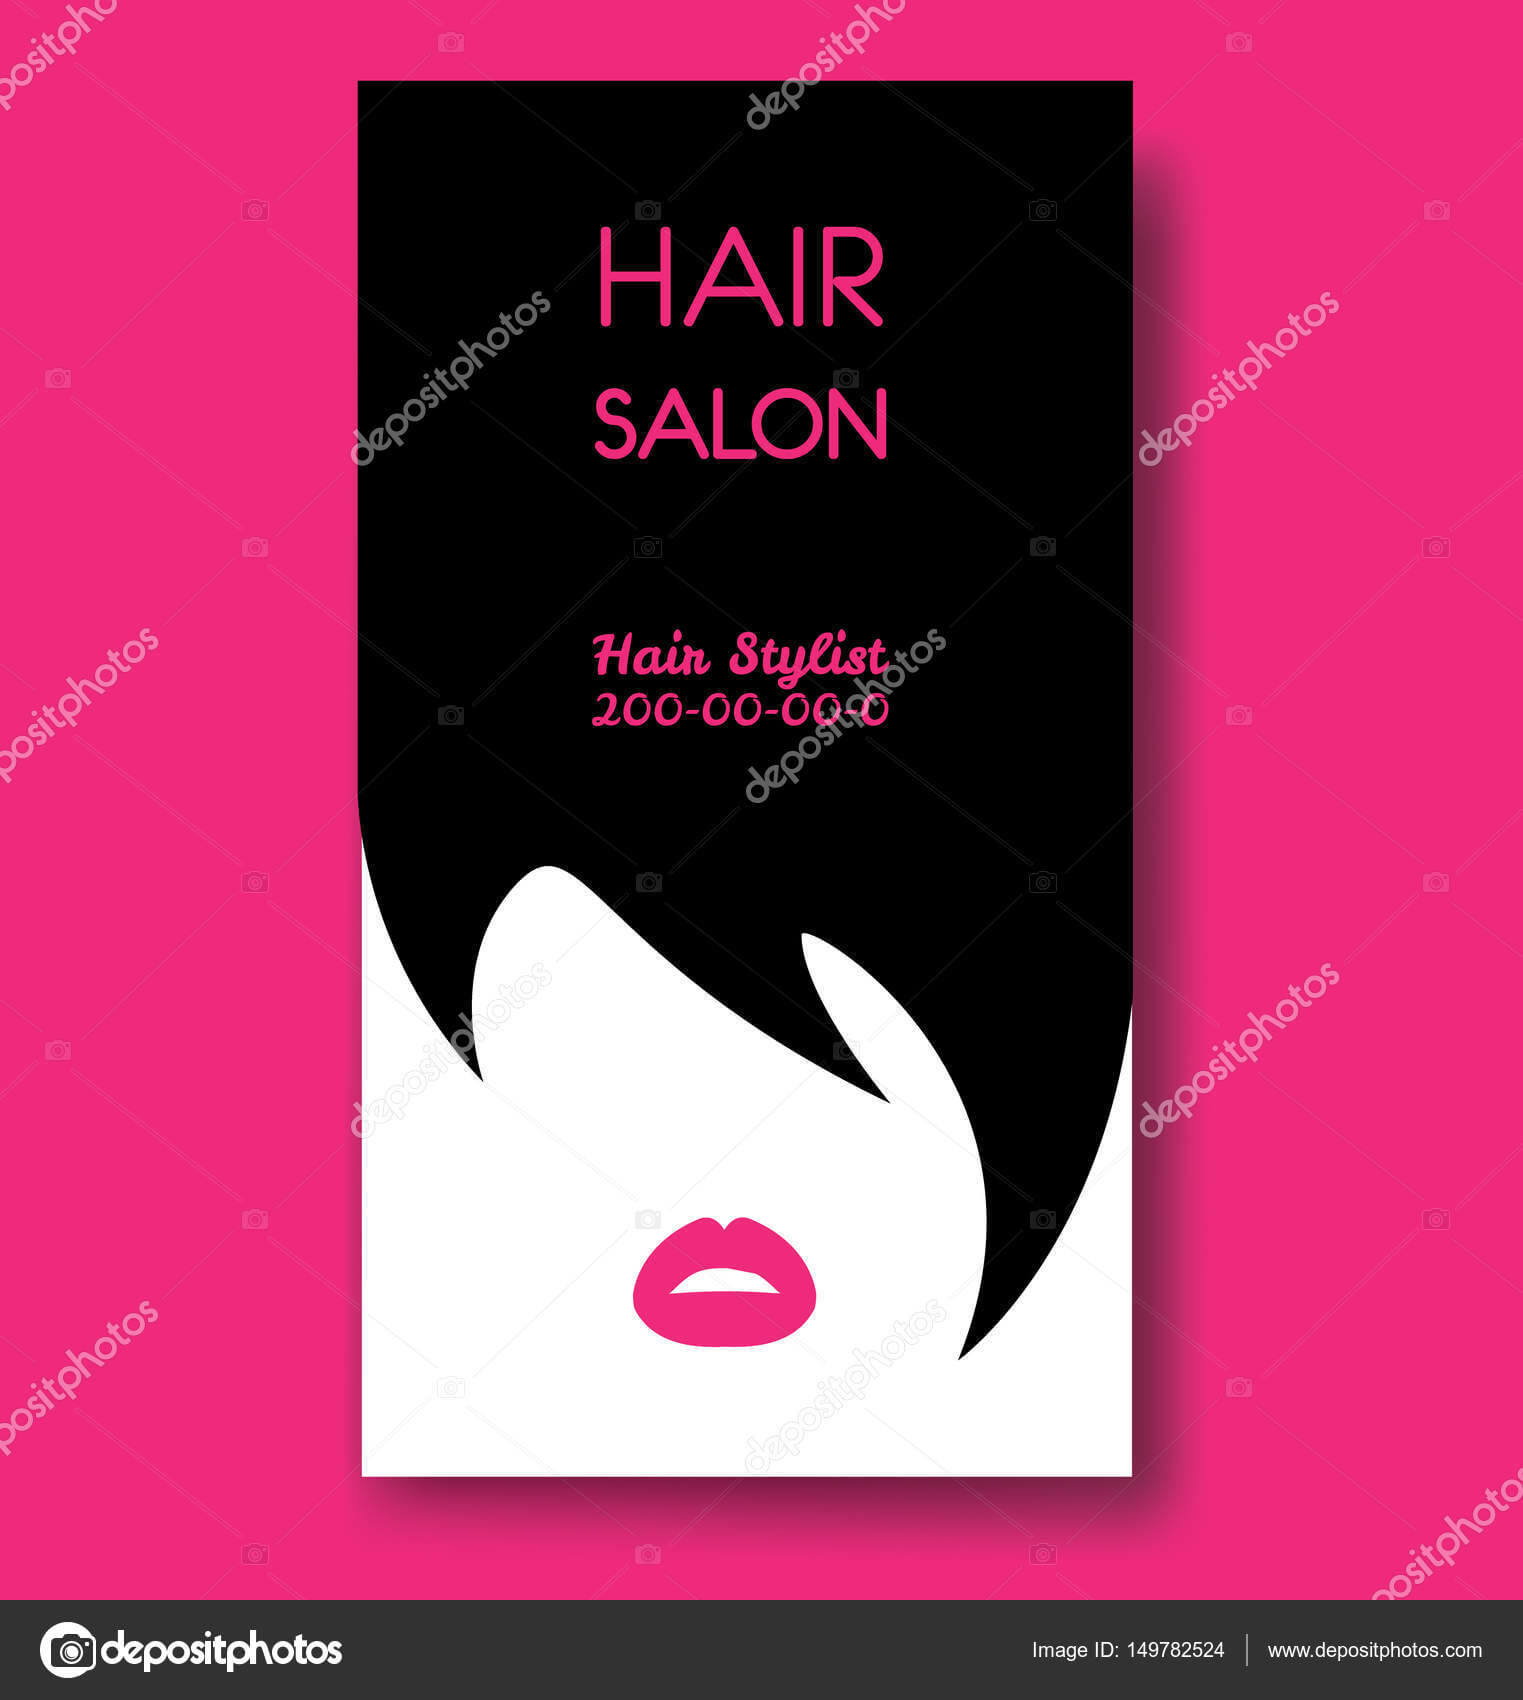 Hair Stylist Business Cards Examples   Hair Salon Business Pertaining To Hair Salon Business Card Template